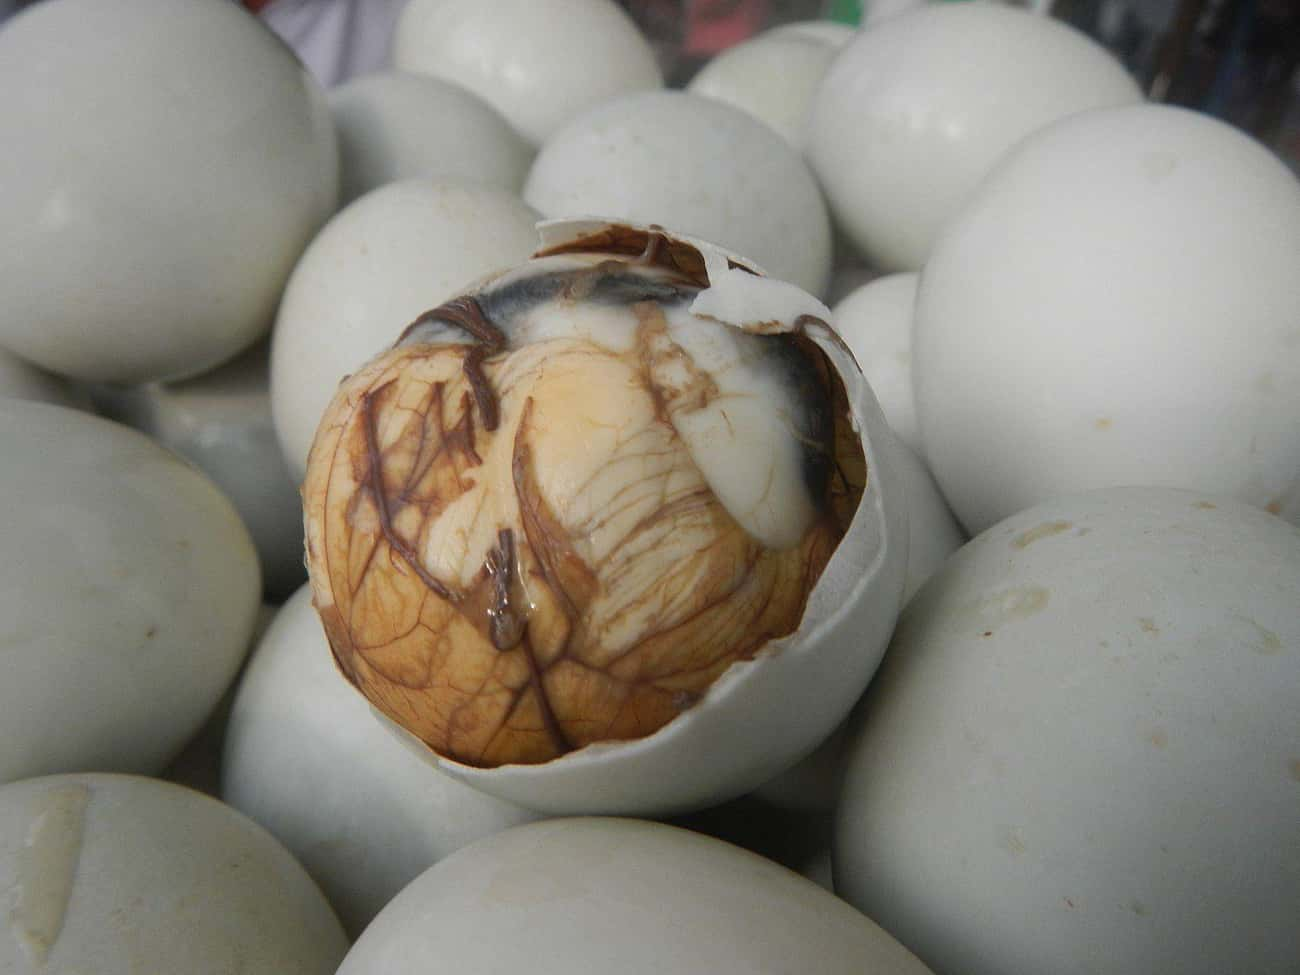 Balut is listed (or ranked) 1 on the list The Strangest Things You Can Eat At The Disgusting Food Museum